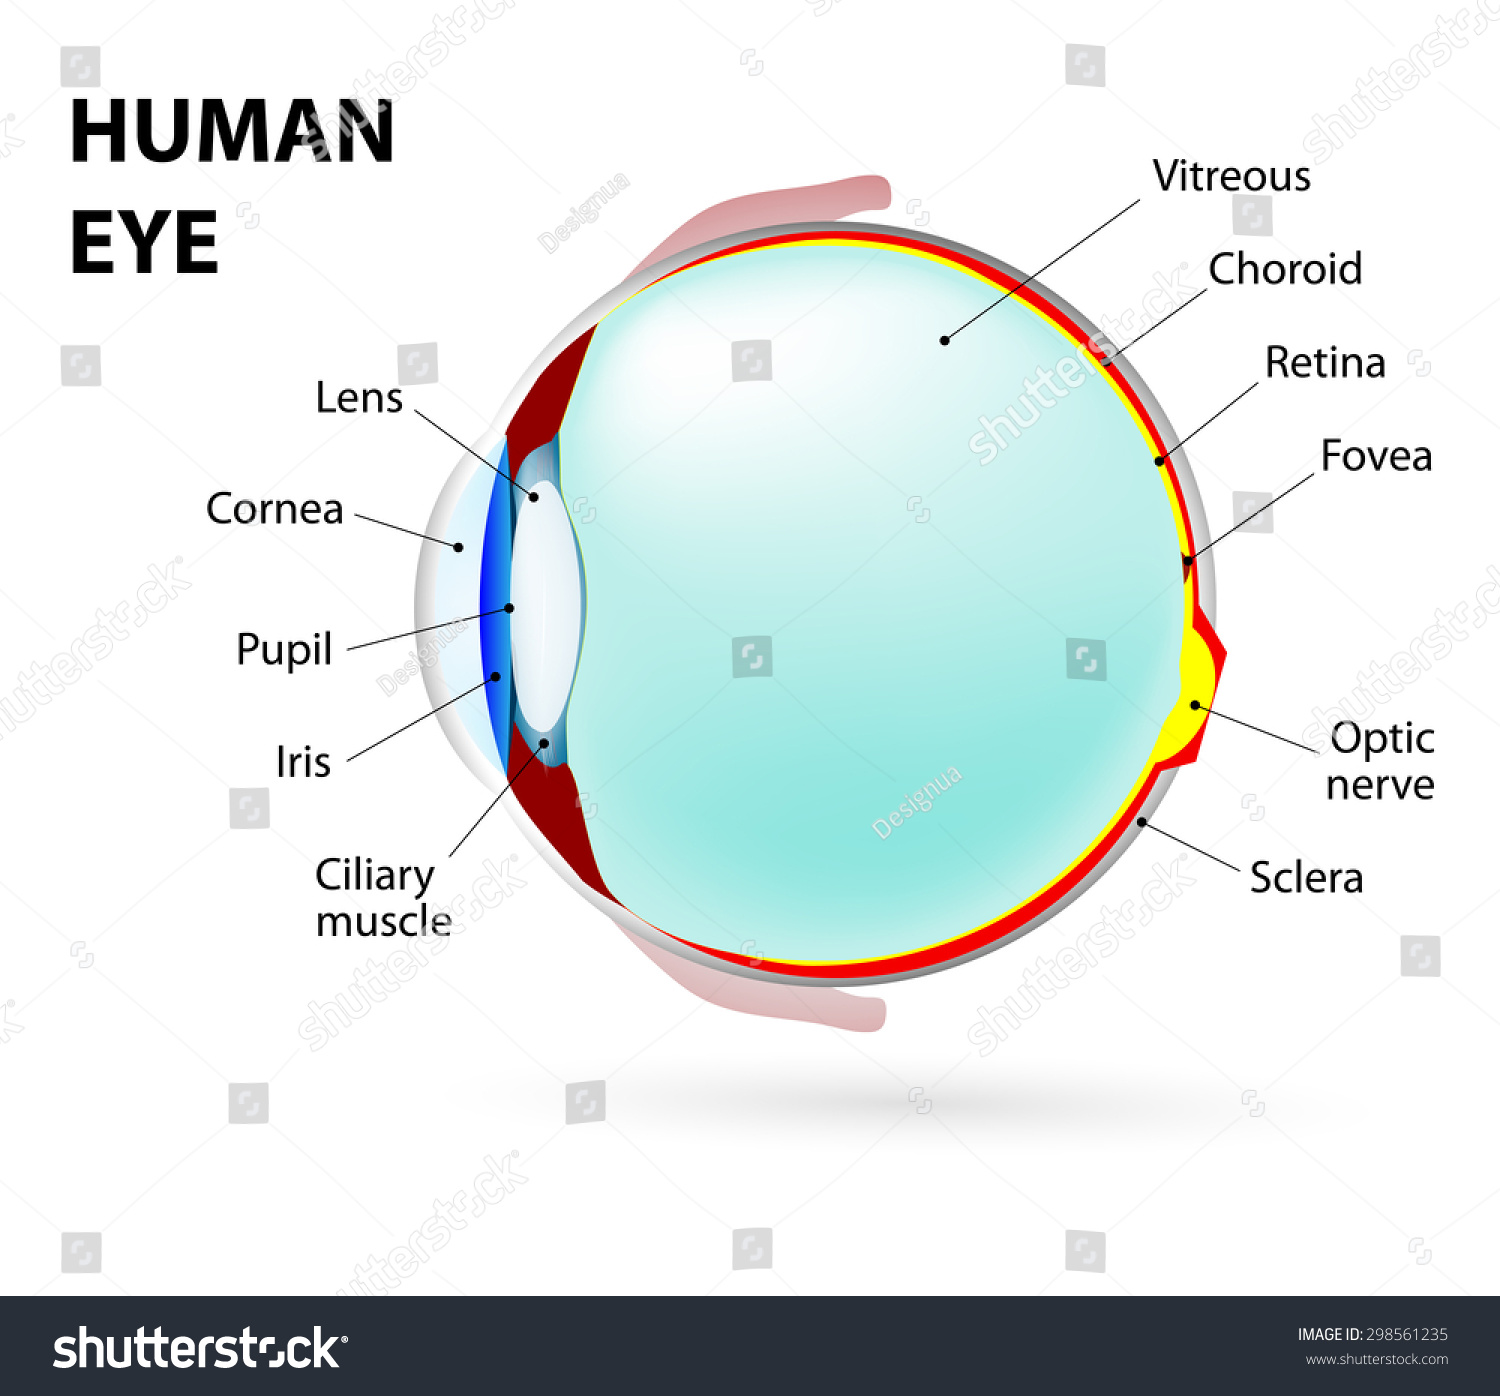 Schematic Diagram Of The Eye Human Anatomy Labeled Stock Photo Shutterstock